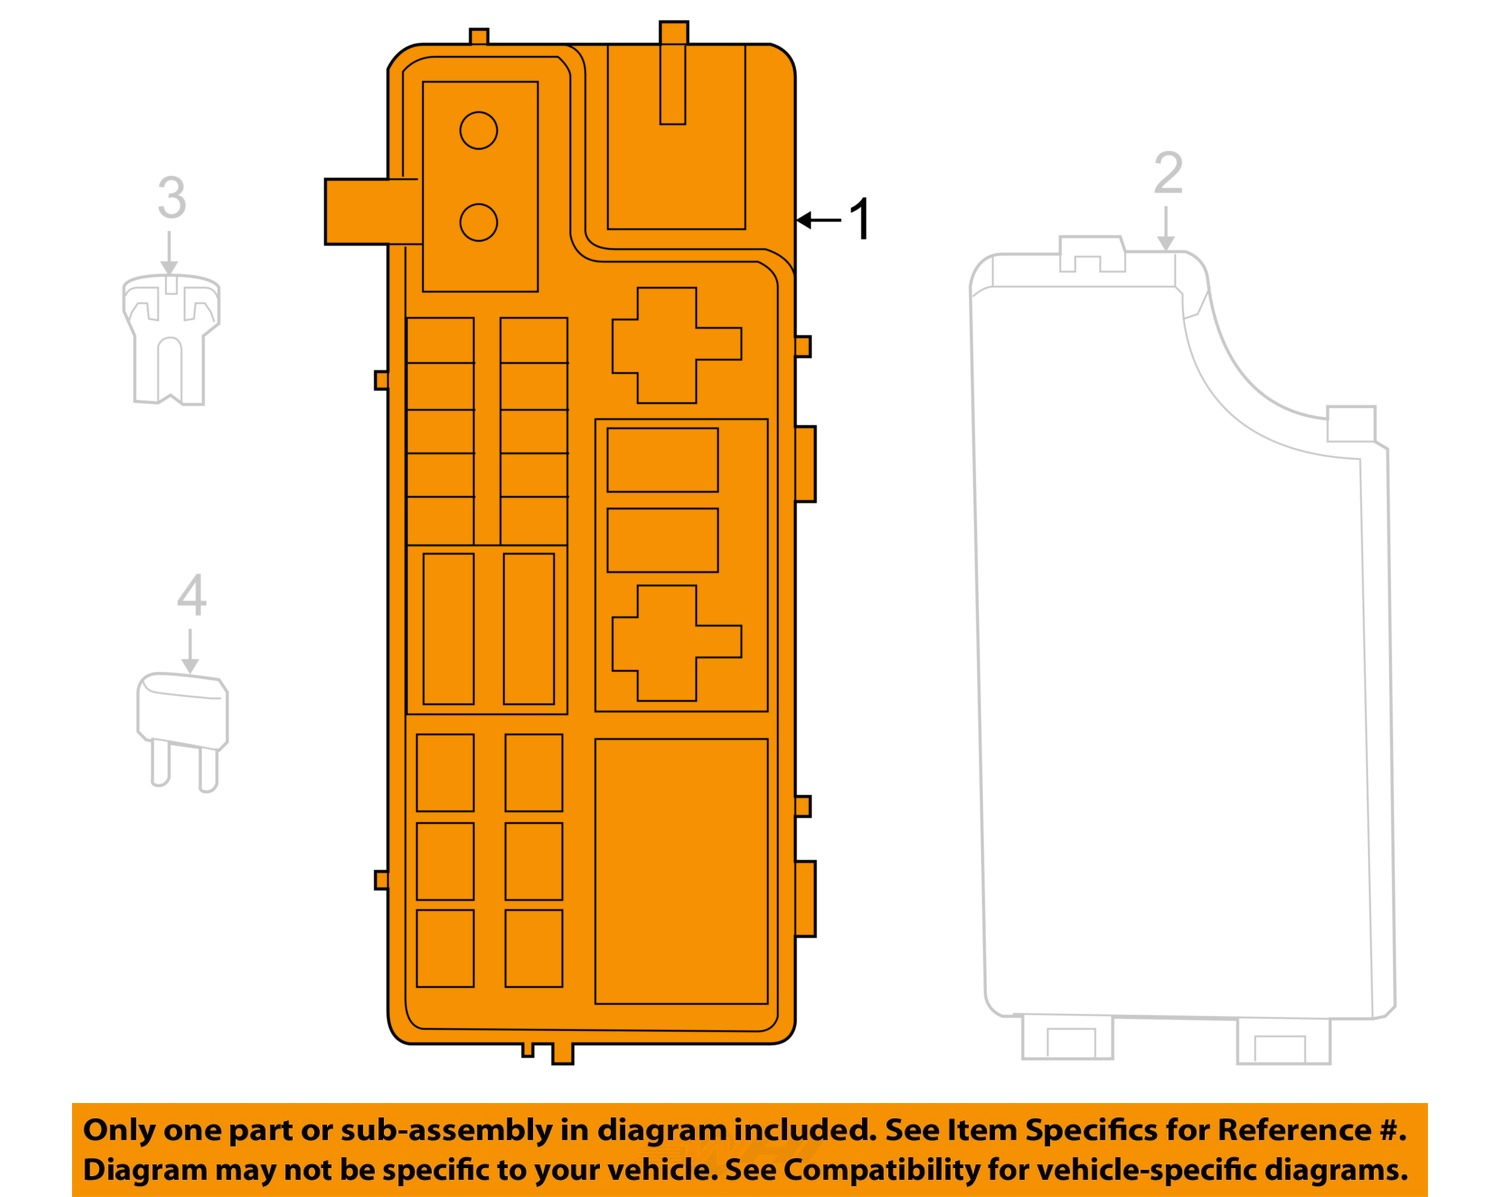 jeep chrysler oem 2007 compass 2.4l-l4 fuse box-module ... jeep compass fuse box diagram 2007 jeep compass fuse box diagram #6